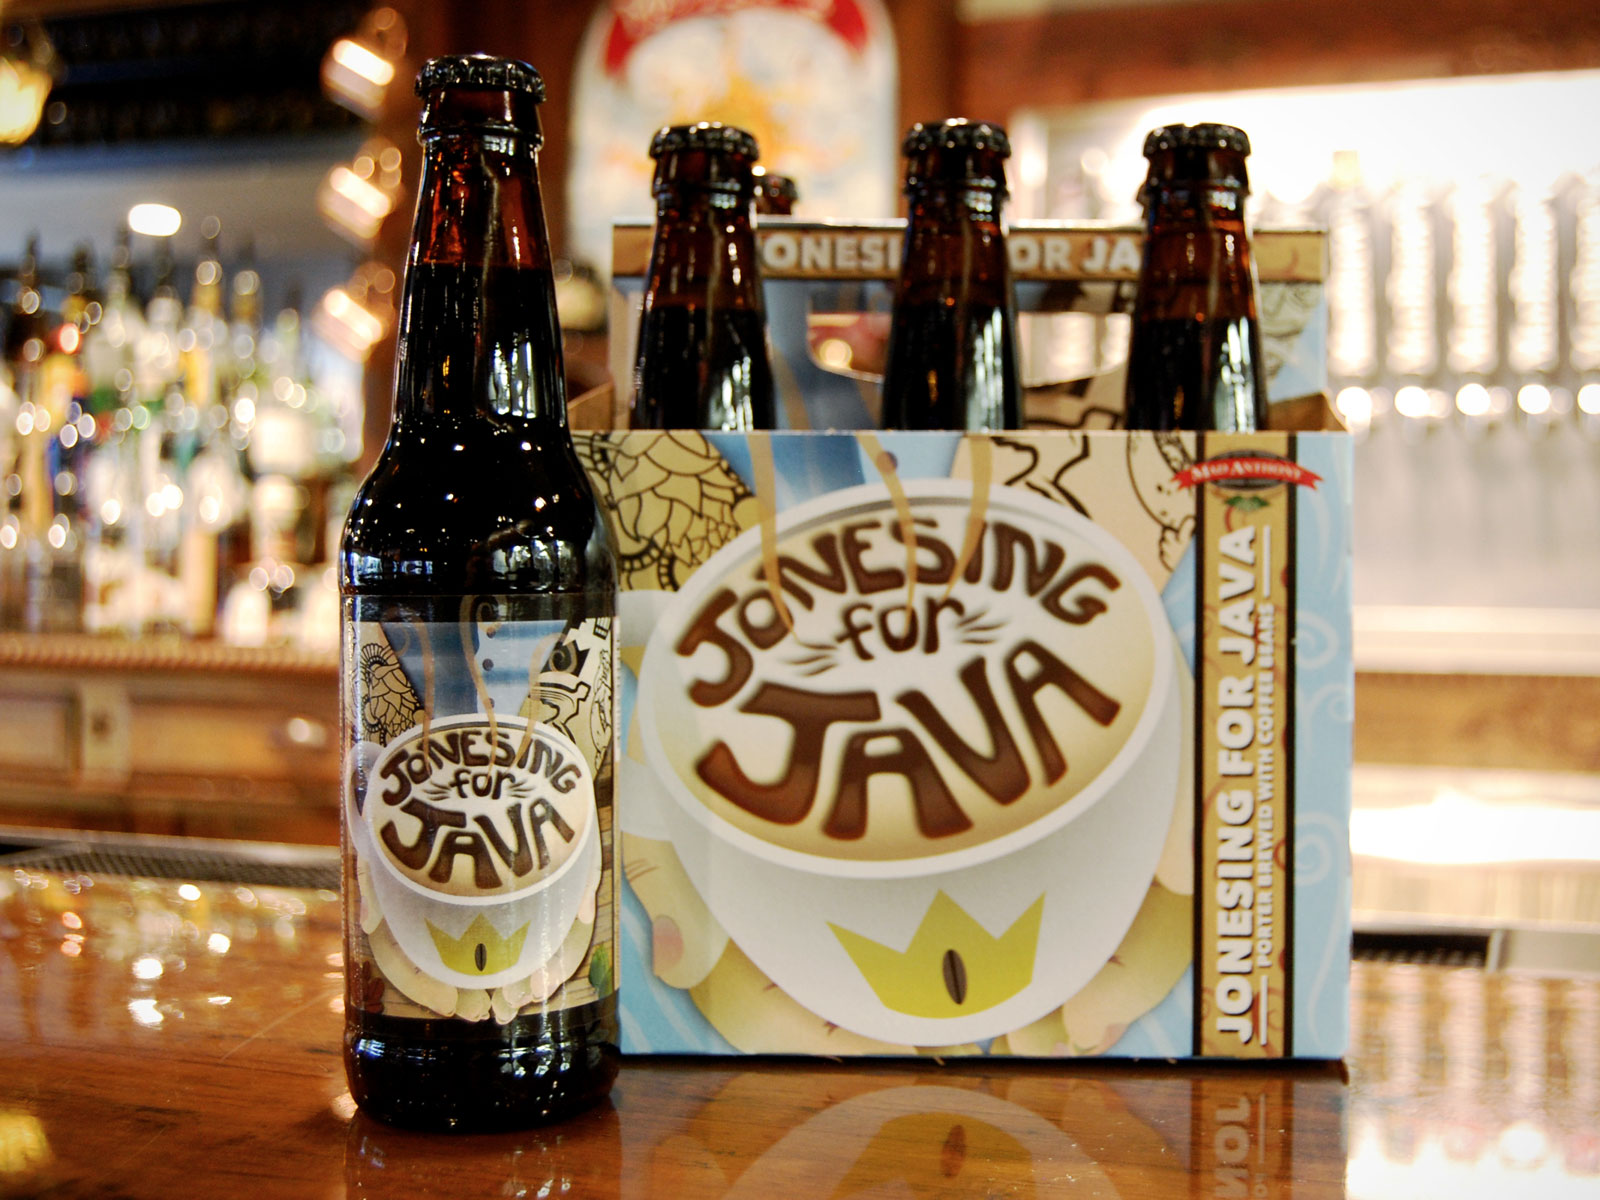 Mad Anthony Brewing - Jonesing for Java Imperial Porter